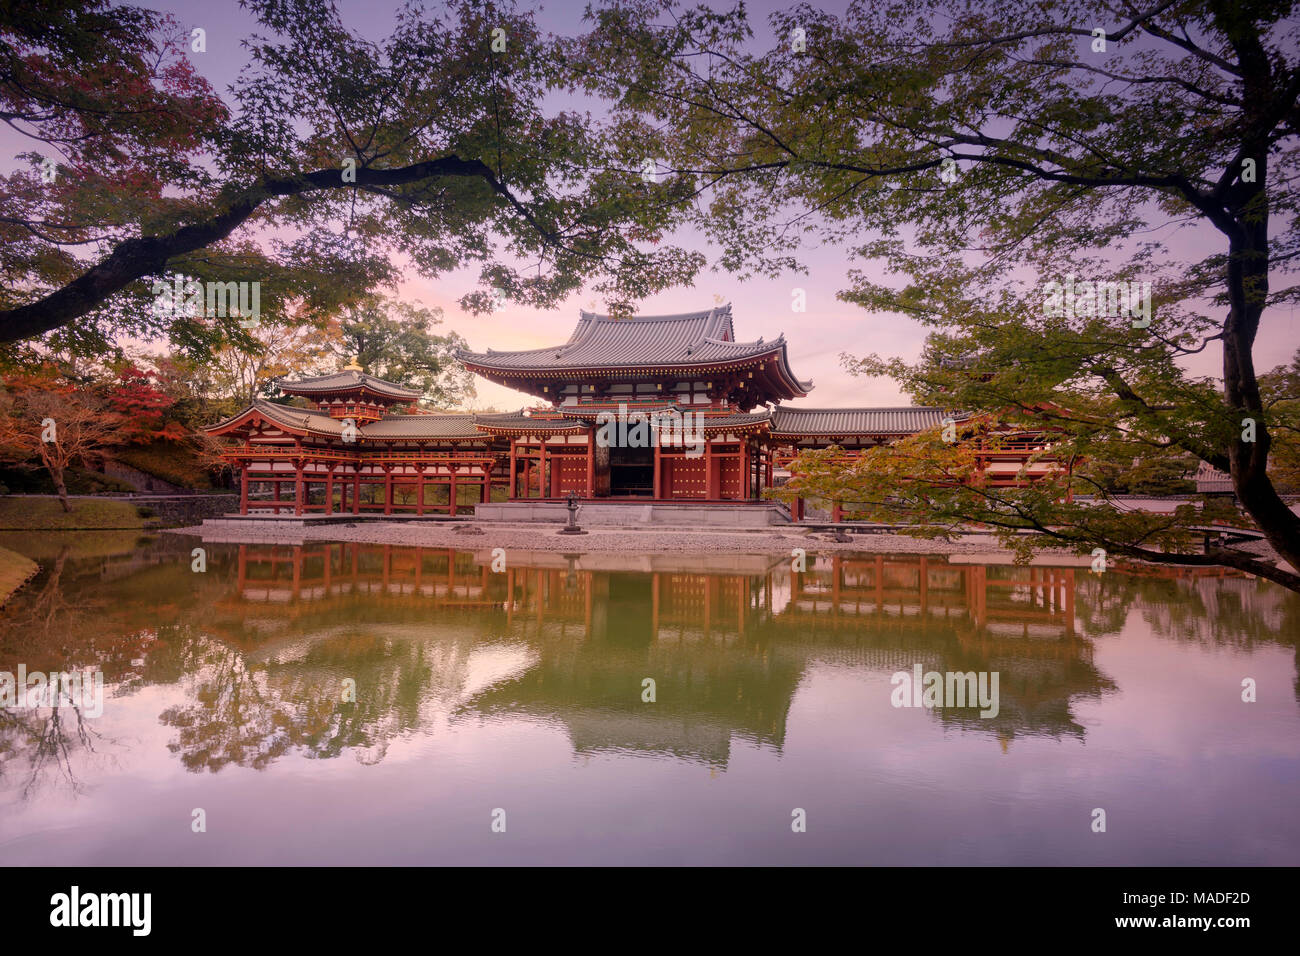 Phoenix Hall, Hoodo or Amida Hall, of Byodo-in, Jodo-shiki garden with a pond in a beautiful surreal sunrise autumn scenery framed by Japanese maple t - Stock Image